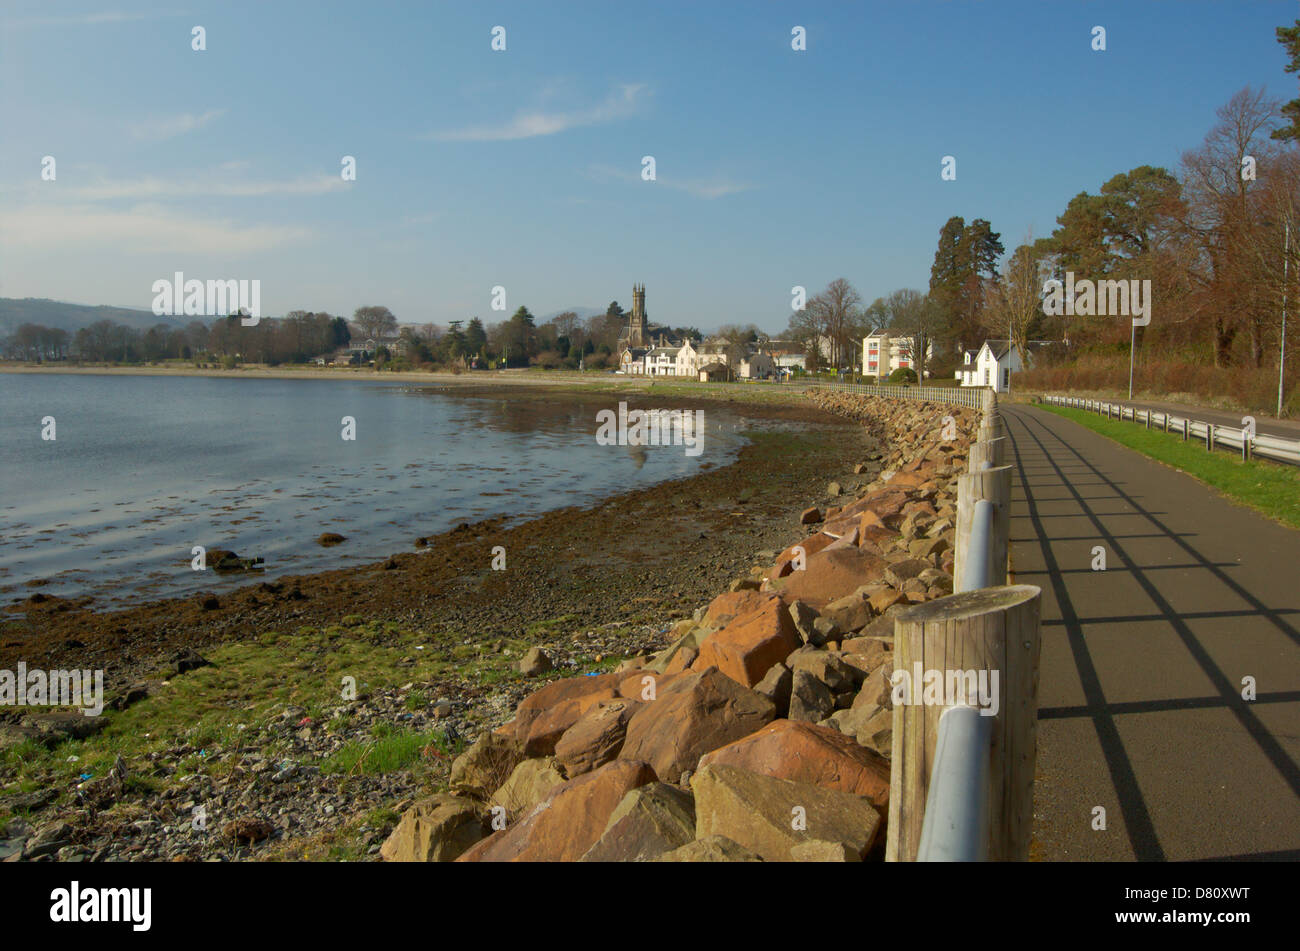 Waterfront at Rhu on the Gareloch, Scotland - Stock Image